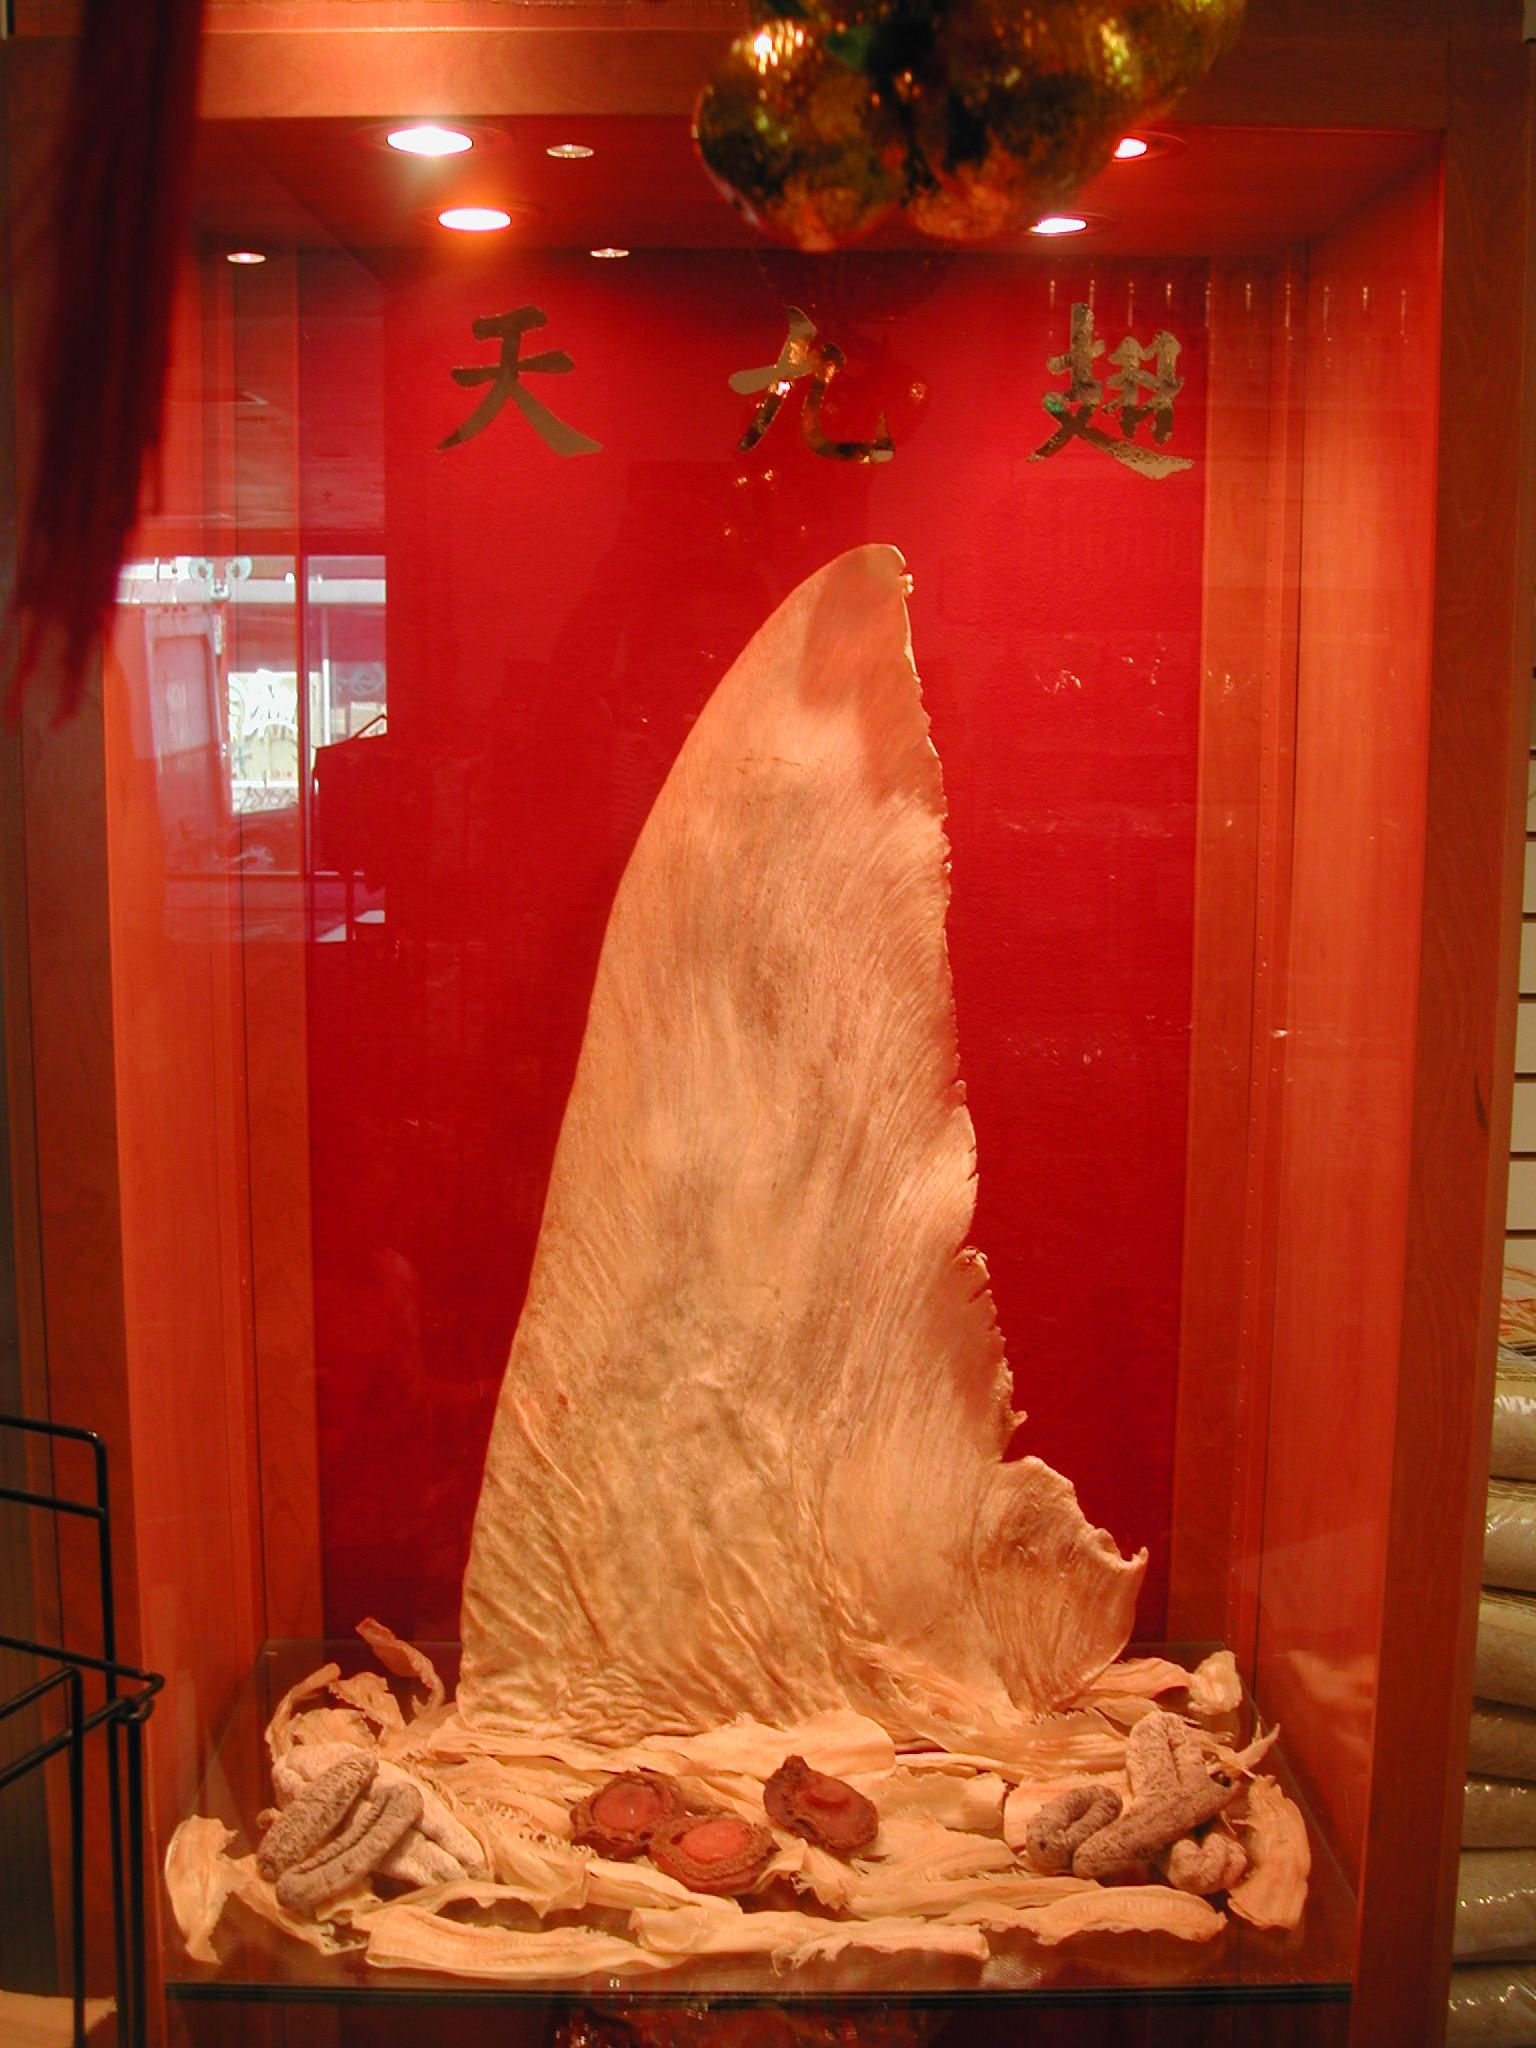 Shark fin in a Chinese restaurant